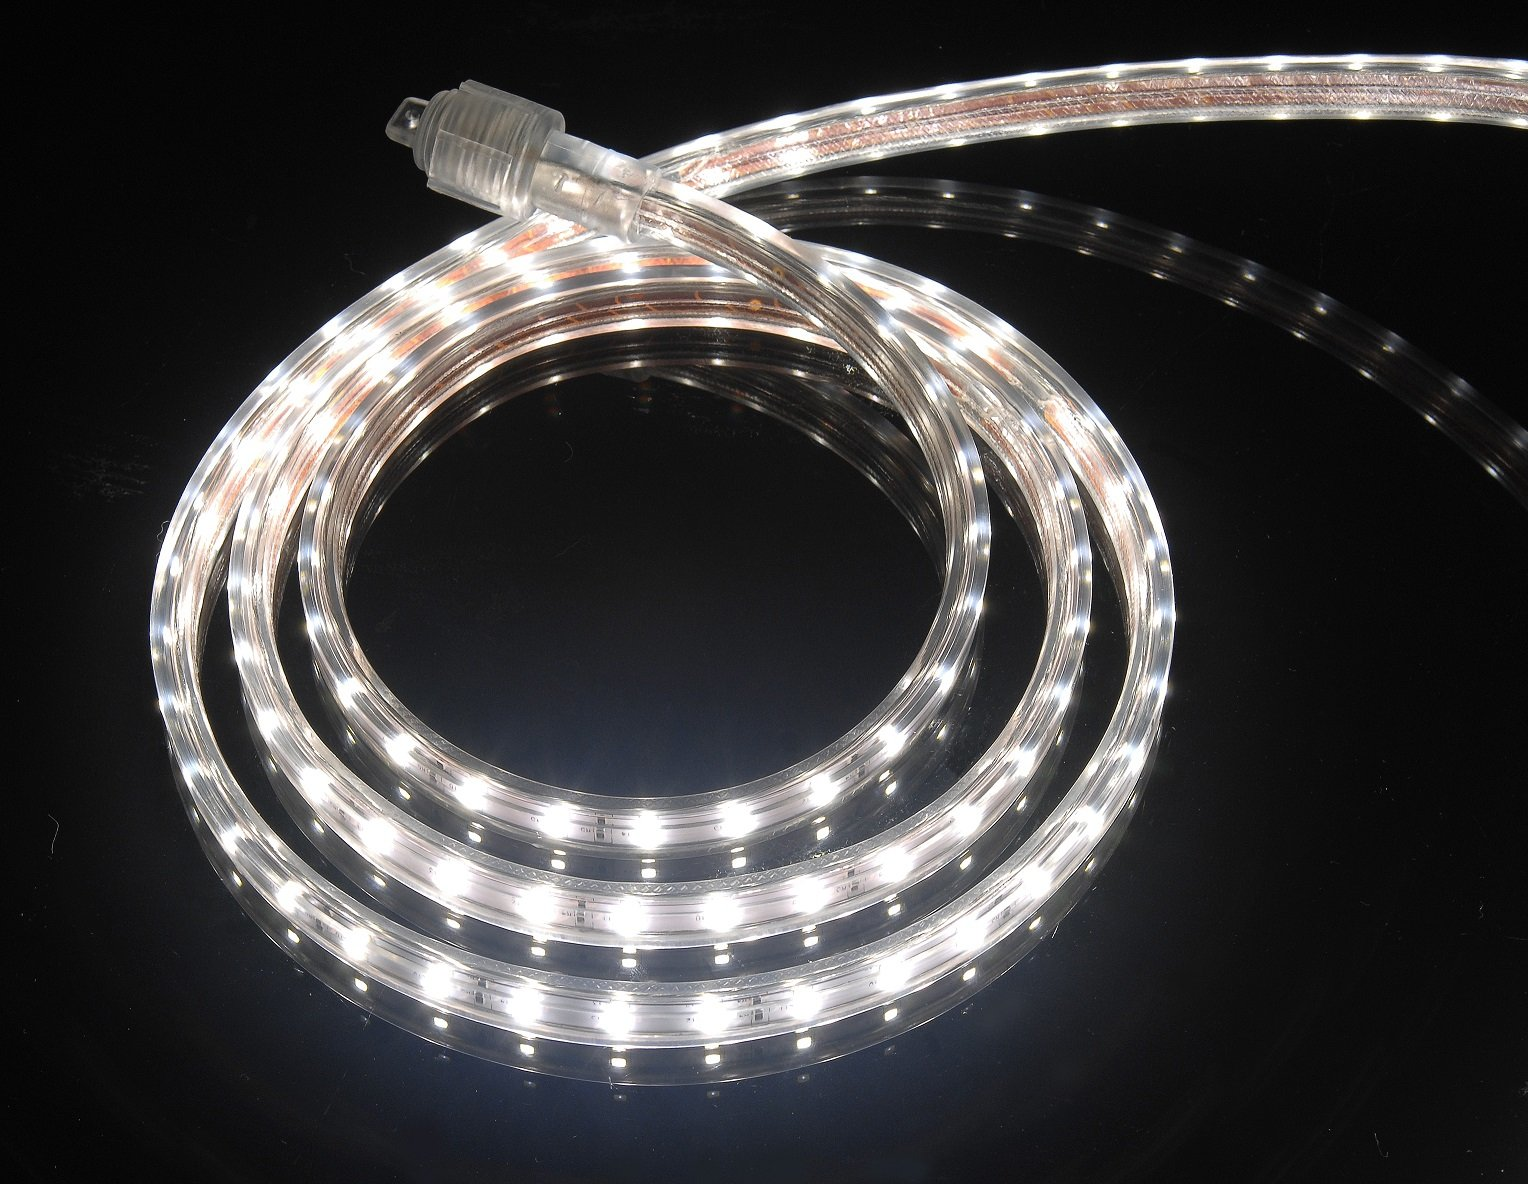 CBconcept UL Listed, 6.6 Feet, 720 Lumen, 4000K Soft White, Dimmable, 110-120V AC Flexible Flat LED Strip Rope Light, 120 Units 3528 SMD LEDs, Indoor/Outdoor Use, Accessories Included, [Ready to use]